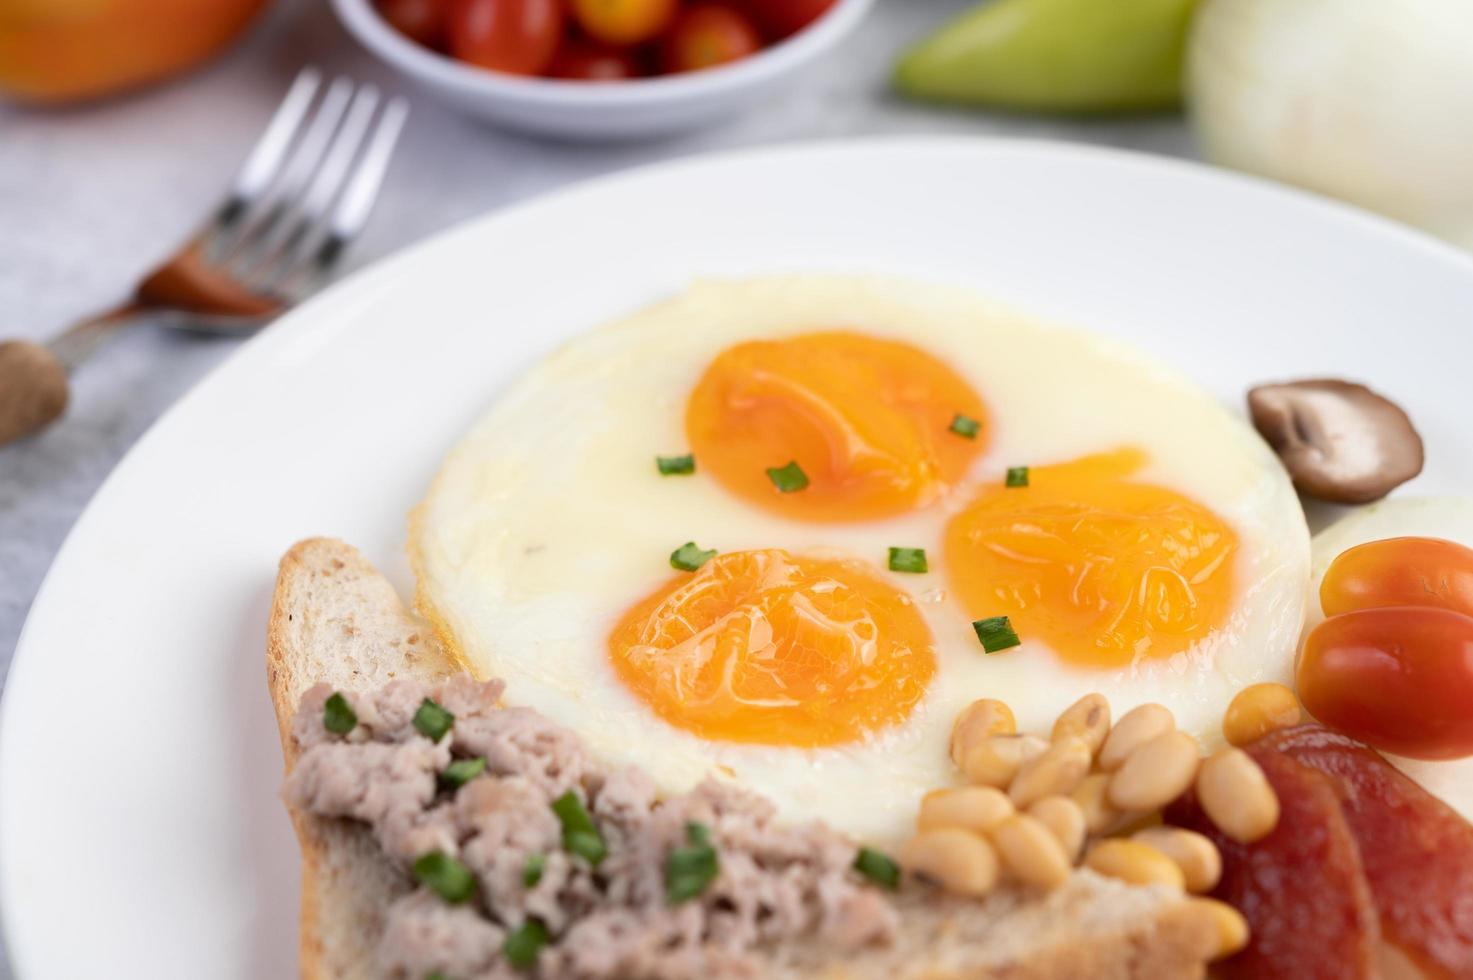 Fried eggs, sausage, minced pork, bread and red beans photo